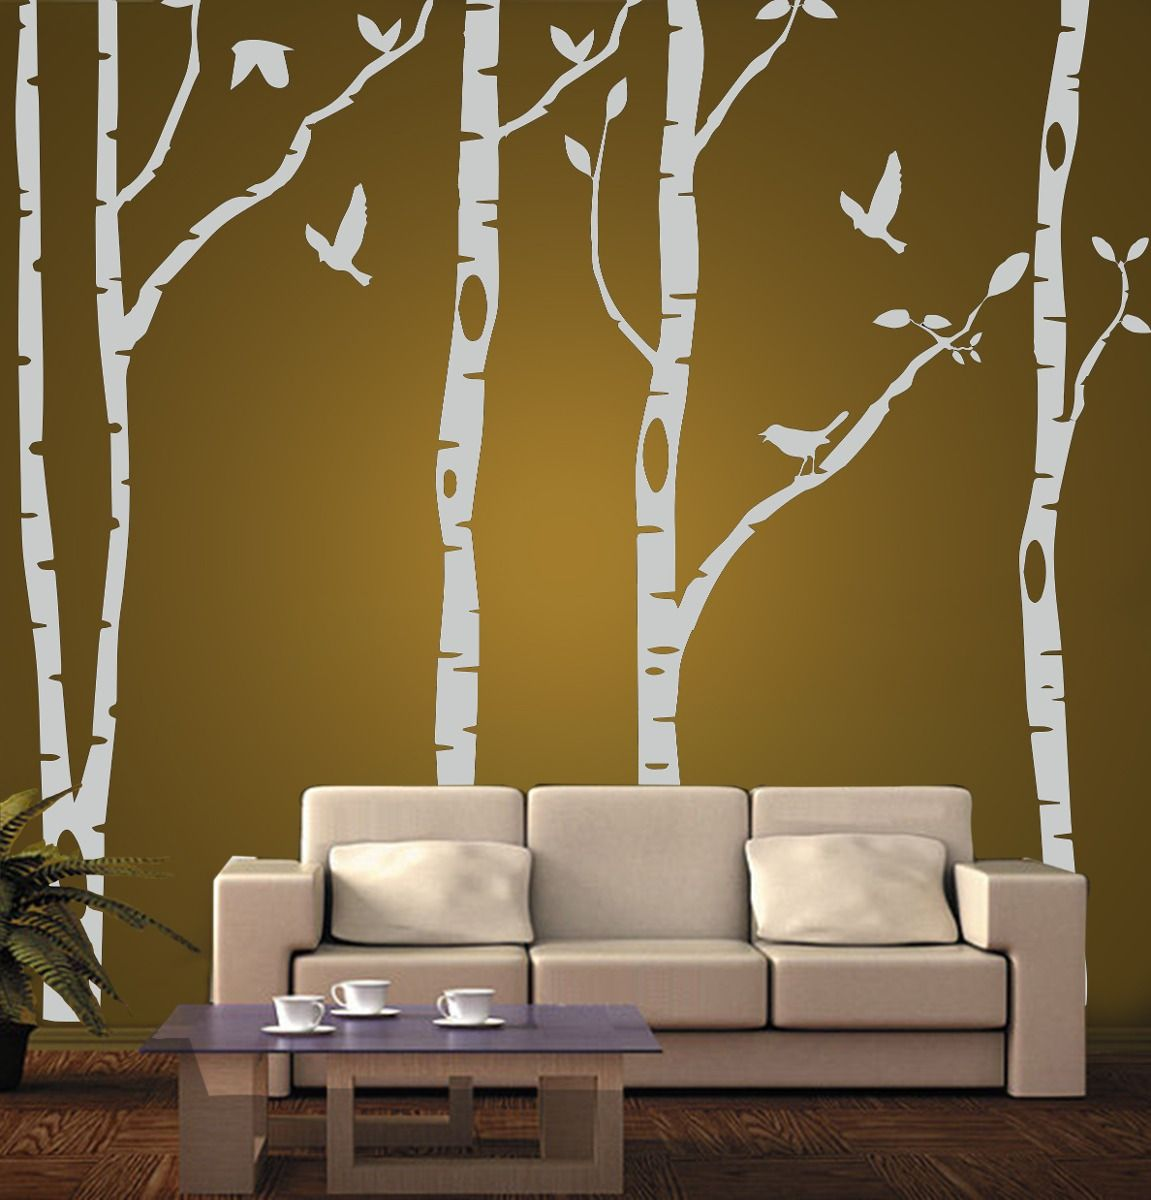 Vinilo pared arboles decoraci n wall stickers decoraci n vinilos y murales - Decoracion vinilos adhesivos ...